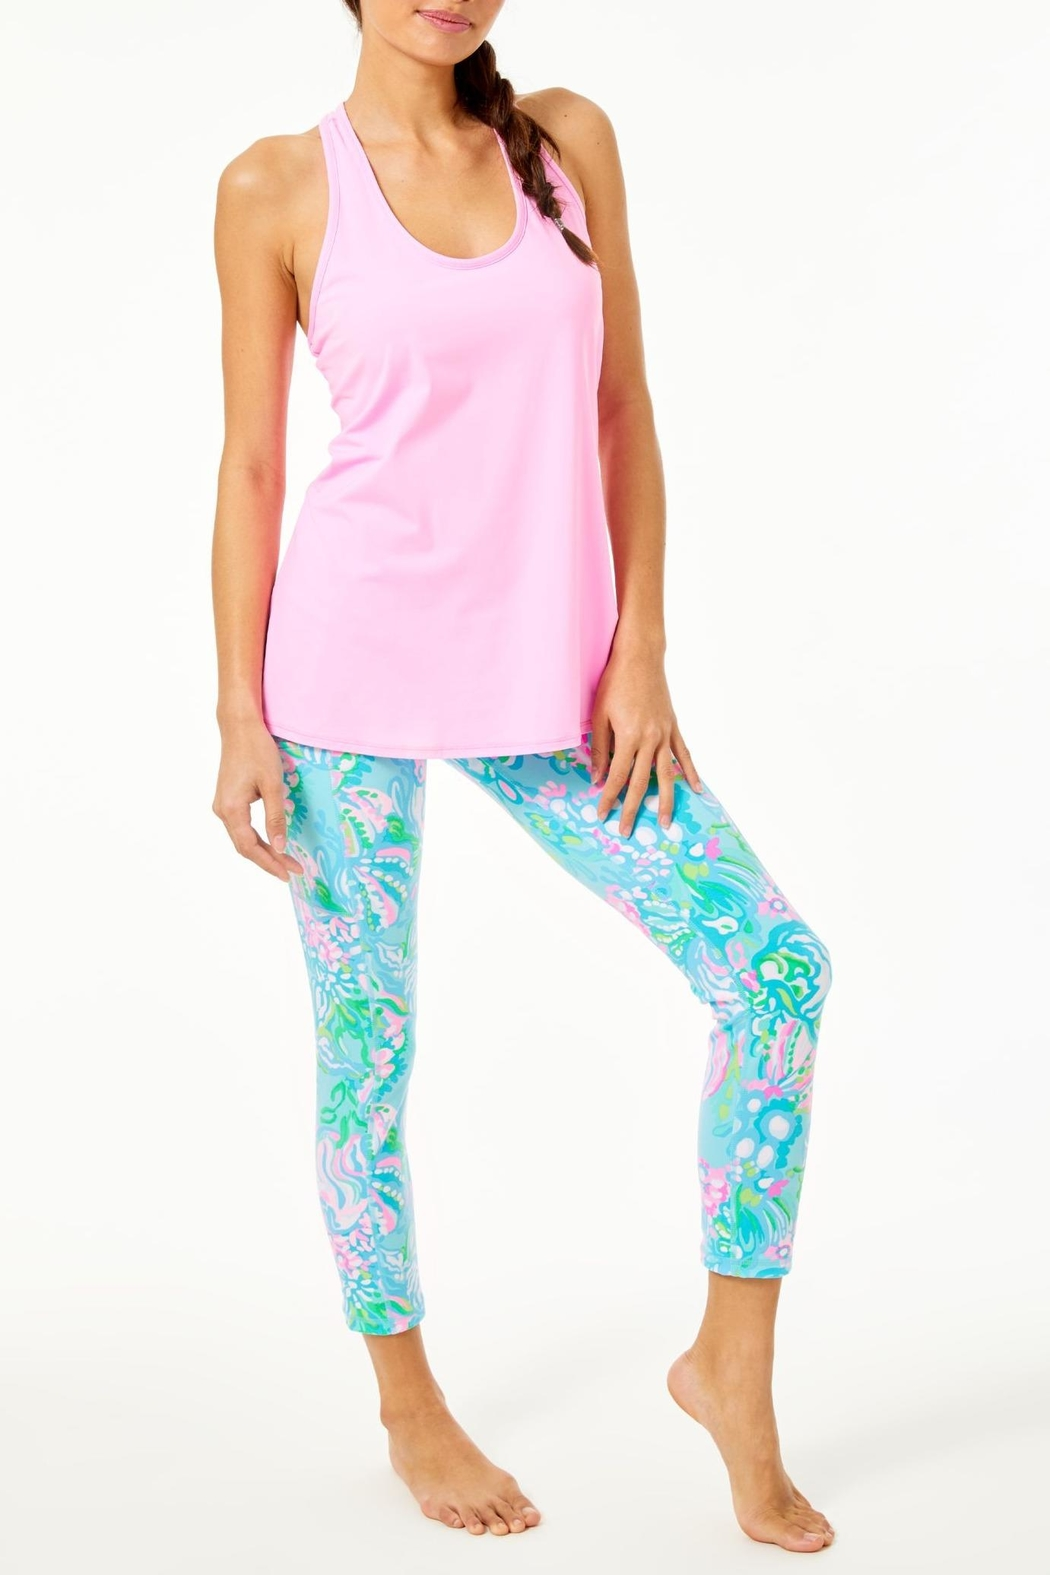 Lilly Pulitzer Luxletic Tank Top - Side Cropped Image